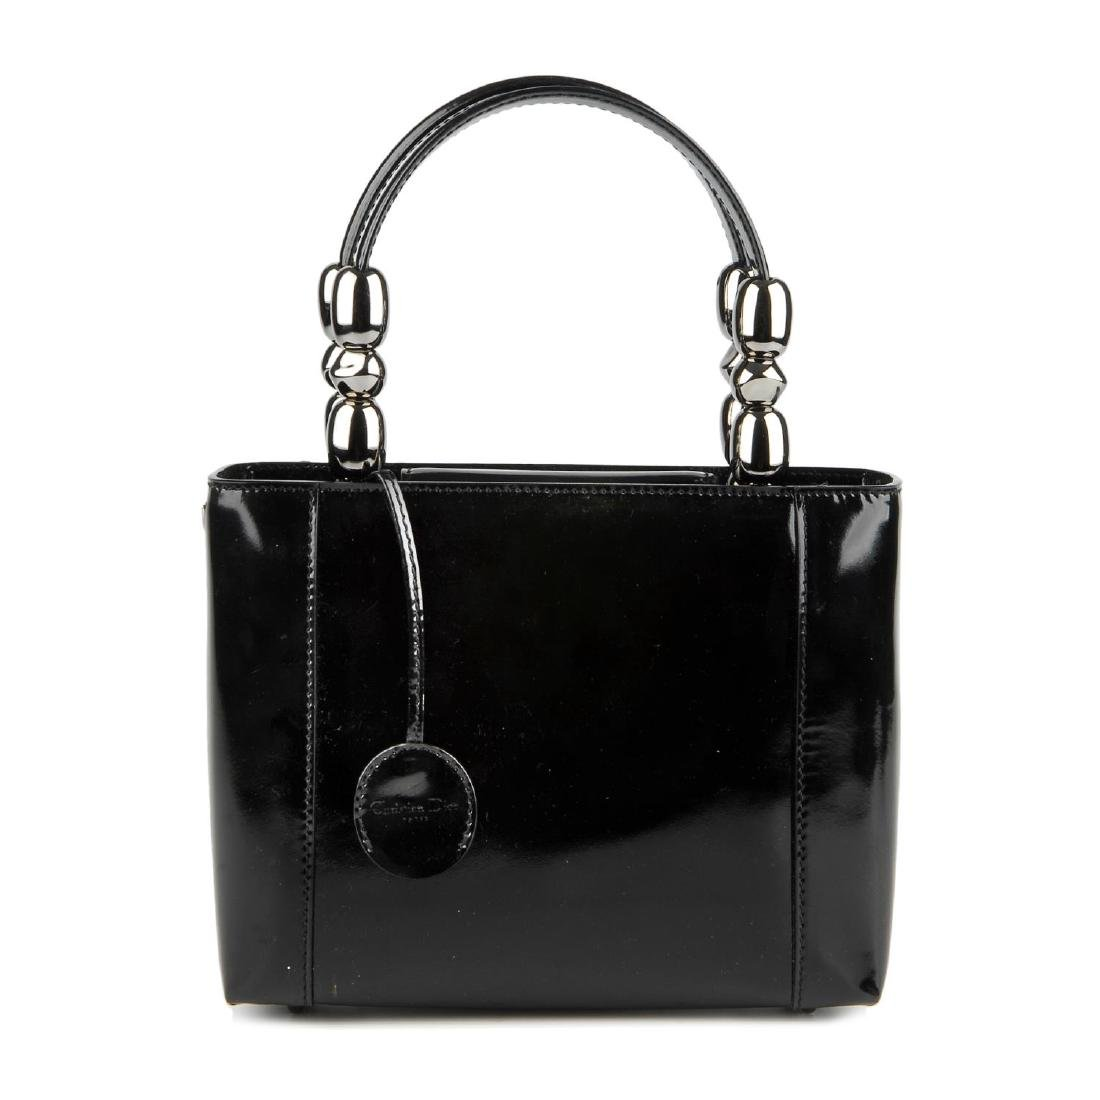 CHRISTIAN DIOR - a patent leather Malice handbag.